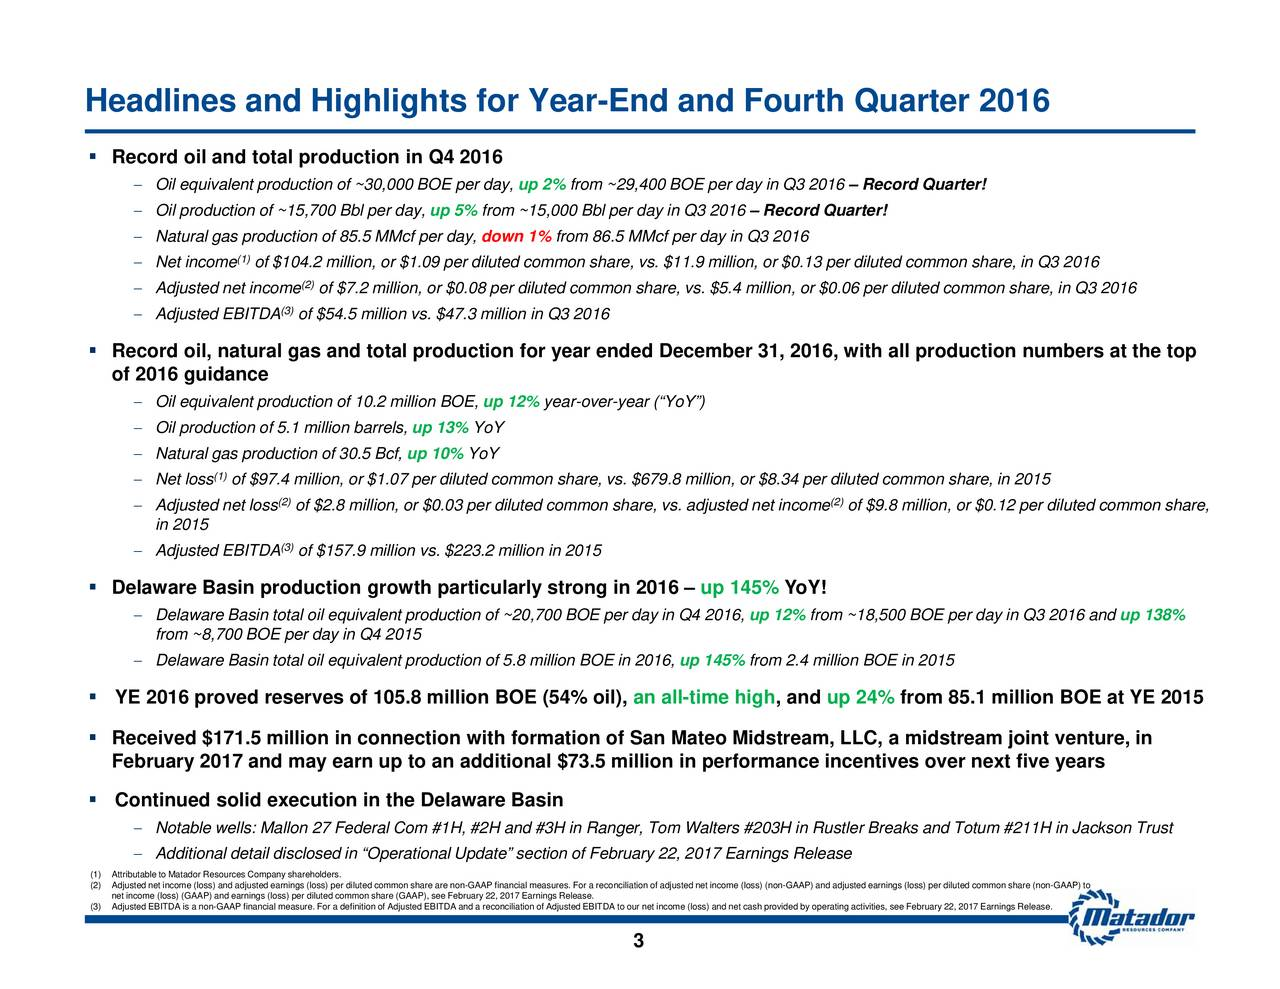 up 138% from 85.1 million BOE at YE 2015 Record Quarter! of $9.8 million, or $0.12 per diluted common share, with all productiilu(2) common share, in 2015 up 24% from ~18,500 BOE per day in Q3 2016 and YoY! , and Record Quarter! up 12%from 2.4 million BOE in 2015 4 million, or $0.06 per diluted common share, in Q3 2016 up 145% .9 million, or $0.13 per diluted common share, in Q3 2016 up 145% 79.8 million, or $8.34 per d n Mon in performance incentives over next five yearsn an all-time high 3 nciliation of adjusted net income (loss) (non-GAAP) and adjusted earnings (loss) per diluted common share (non-GAAP) to from ~29,400 BOE per day in Q3 2016 from 86.5 MMcf per day in Q3 2016 year-over-year (YoY) up 2% frodown 1%00 Bbl ption for yYoY ended December 31, 2016, .3 million in Q3 2016Y up 5% particulaoduction of 5.8 million BOE in 2016, up 1up 10% 8 million BOE (54% oil), of $7.2 million, or $0.08 per diluted common share, vs. $5. (2) of $54.5 million vs. $47 of $2.8 million, or $0.03 per diluted common share, vs. adjusted net income (3) (2) (3) of $104.2 million, or $1.09 per diluted common share, vs. $11 (1) of $97.4 million, or $1.07 per diluted common share, vs. $6 (1) Oil OqiivounctiraAdjusted EBITDAOqlpNatural gin 01djusted EBITDAe8l70areBOasineotaloiilq4i20e5nt preatfl2is7FseBOiElOepedra Record oil and total pR reof 2016 guidancer2alg6as anDde tlaalarroBdaucin RecFebruary 2017 and may earn up to an additional $73.5 millioss) per diluted common share (GAAP), see February 22, 2017 Earnings Release. Headlines and Highlights for Year-End and Fourth Quarter 2016     (1)((3)Adjusted EBITDA is a non-GAAP financial measure. For a definition of Adjusted EBITDA and a reconciliation of Adjusted EBITDAa reco